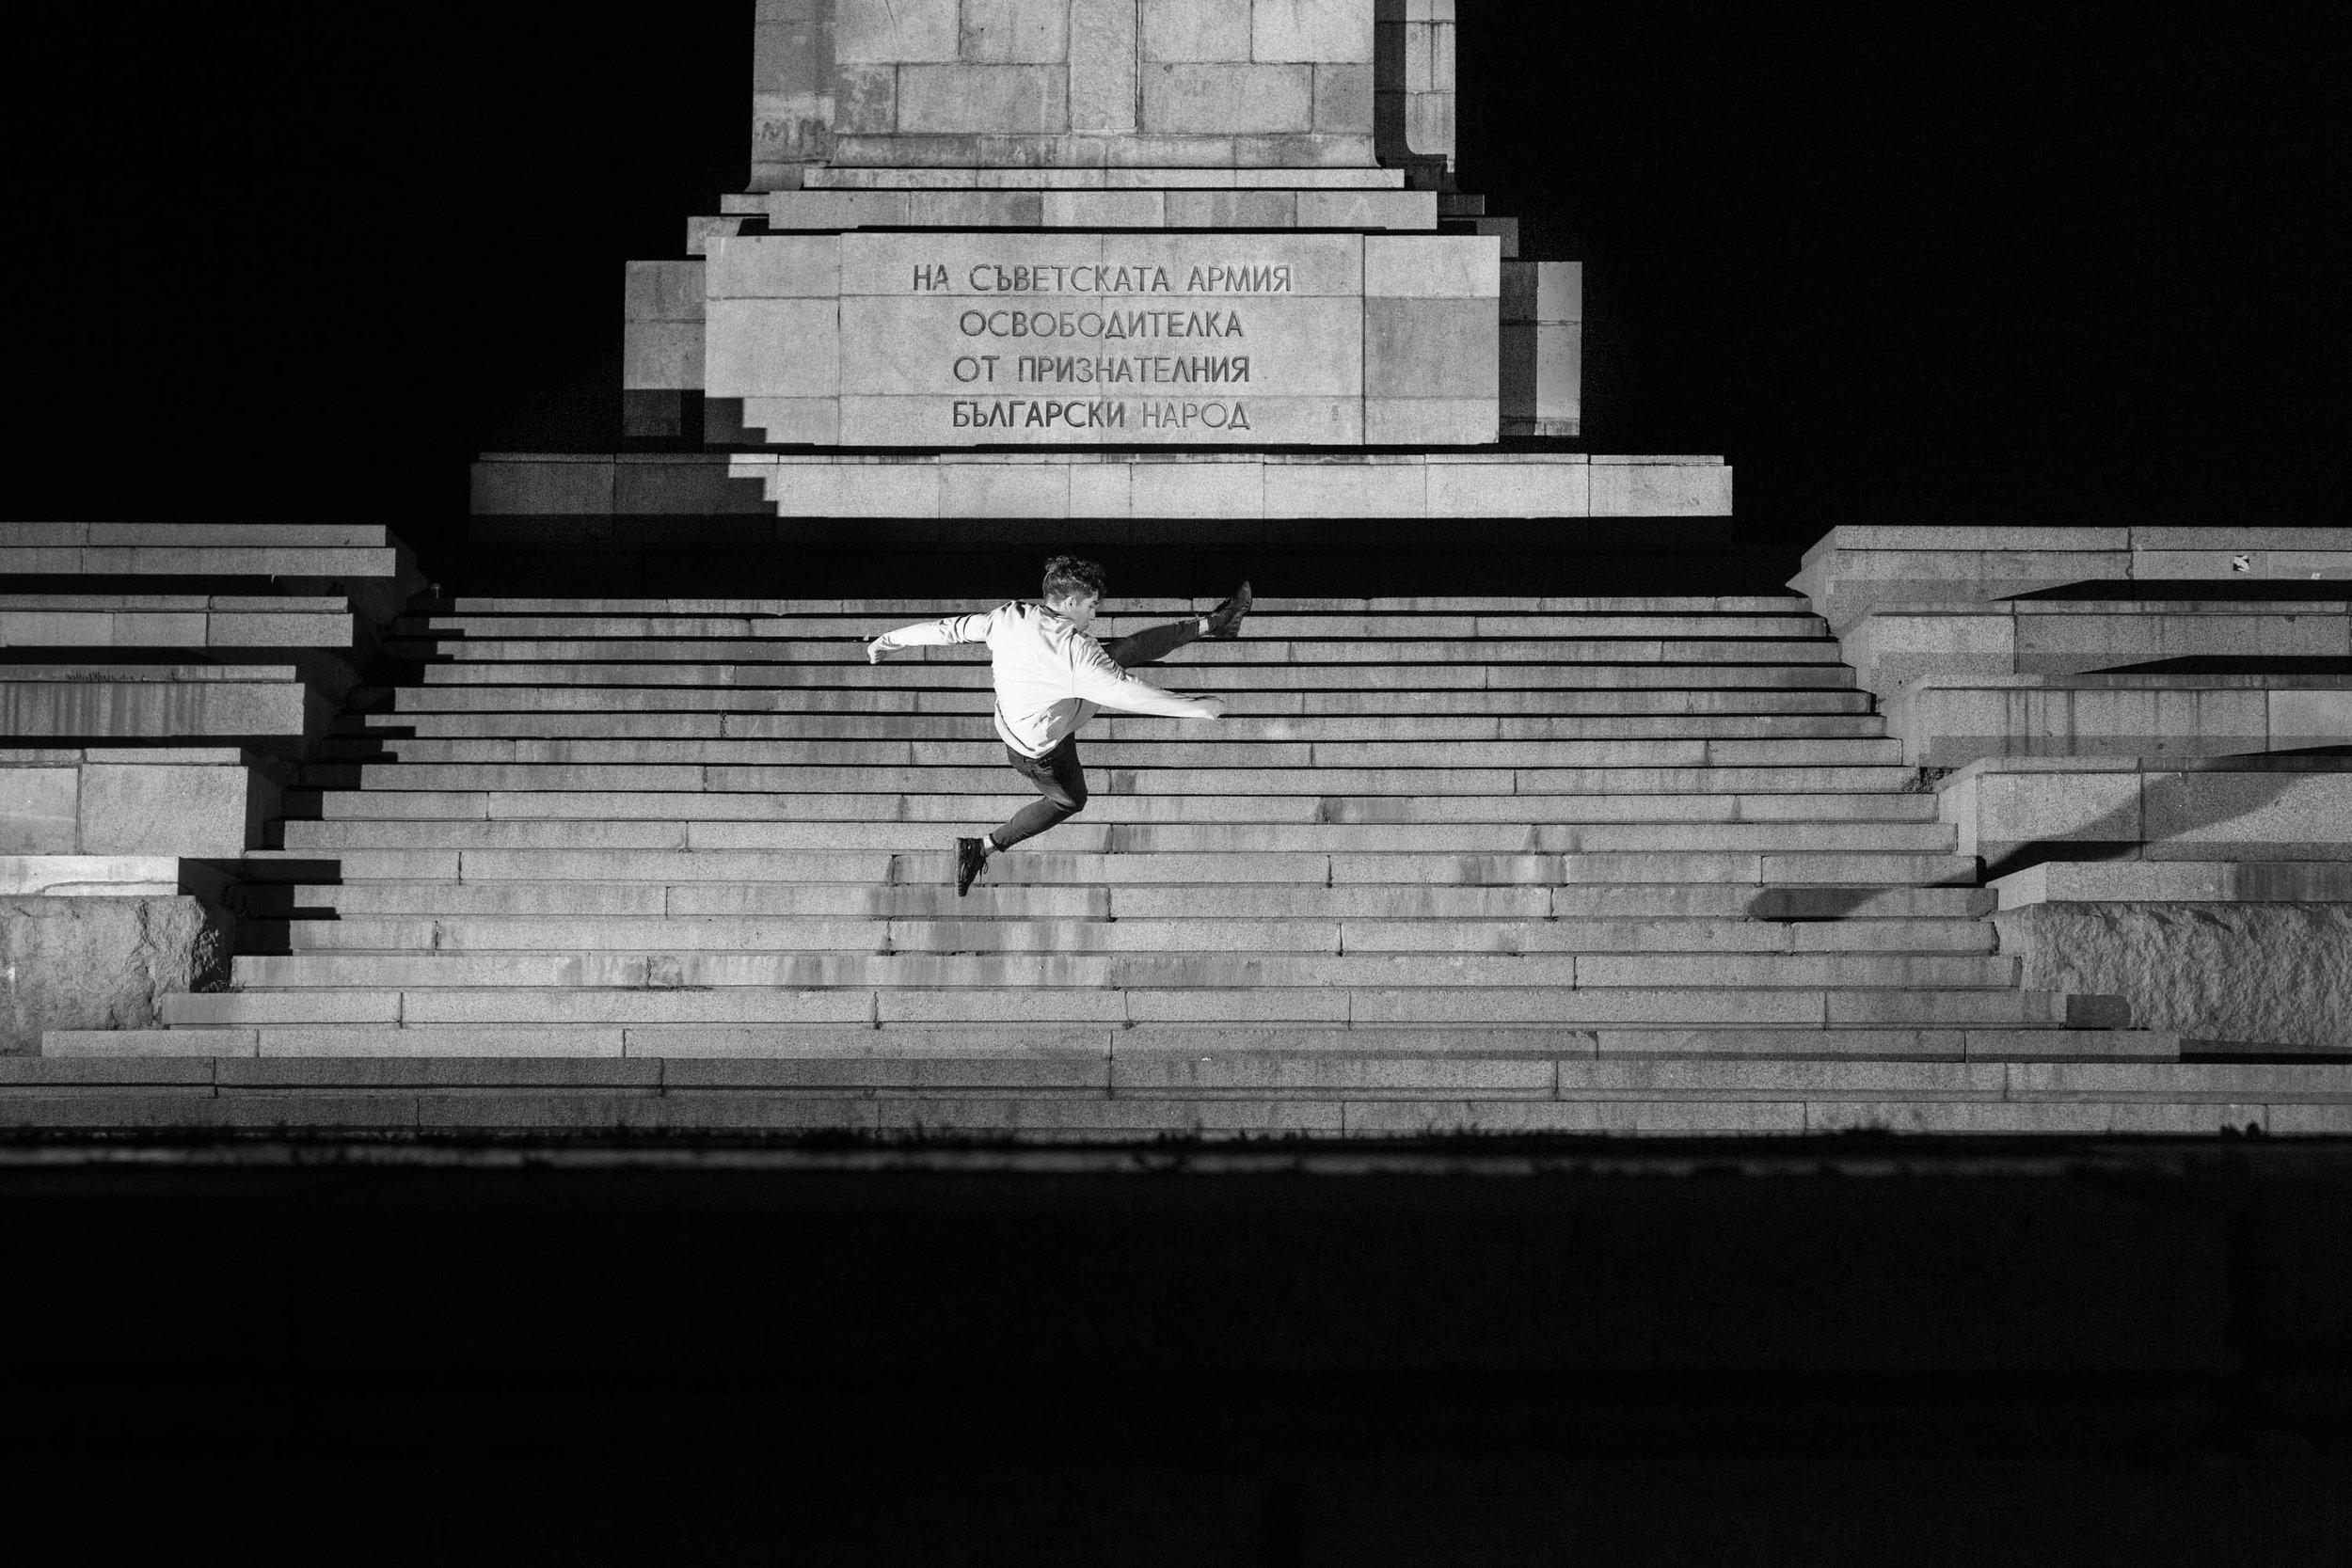 Exploring Bulgaria through parkour and architecture '18 -